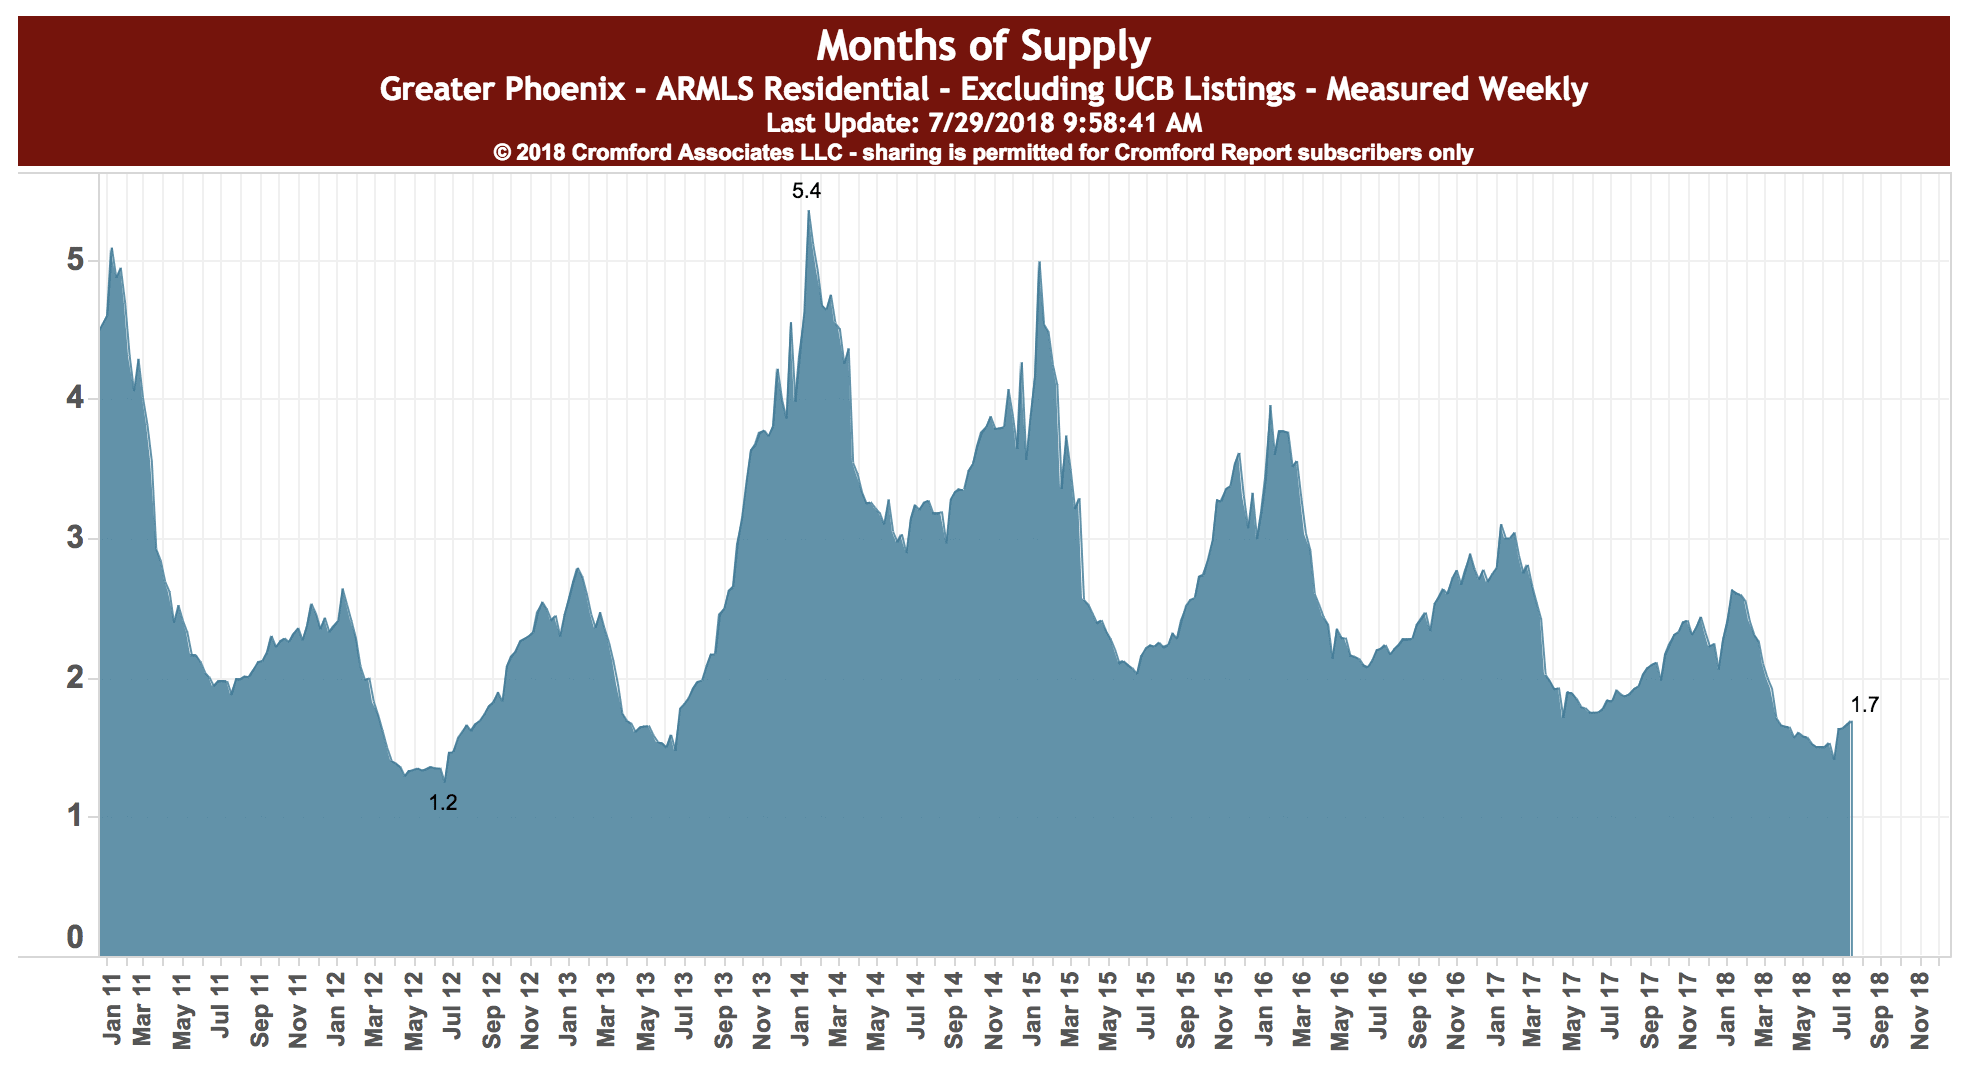 Graph showing Months of Supply - August 2018